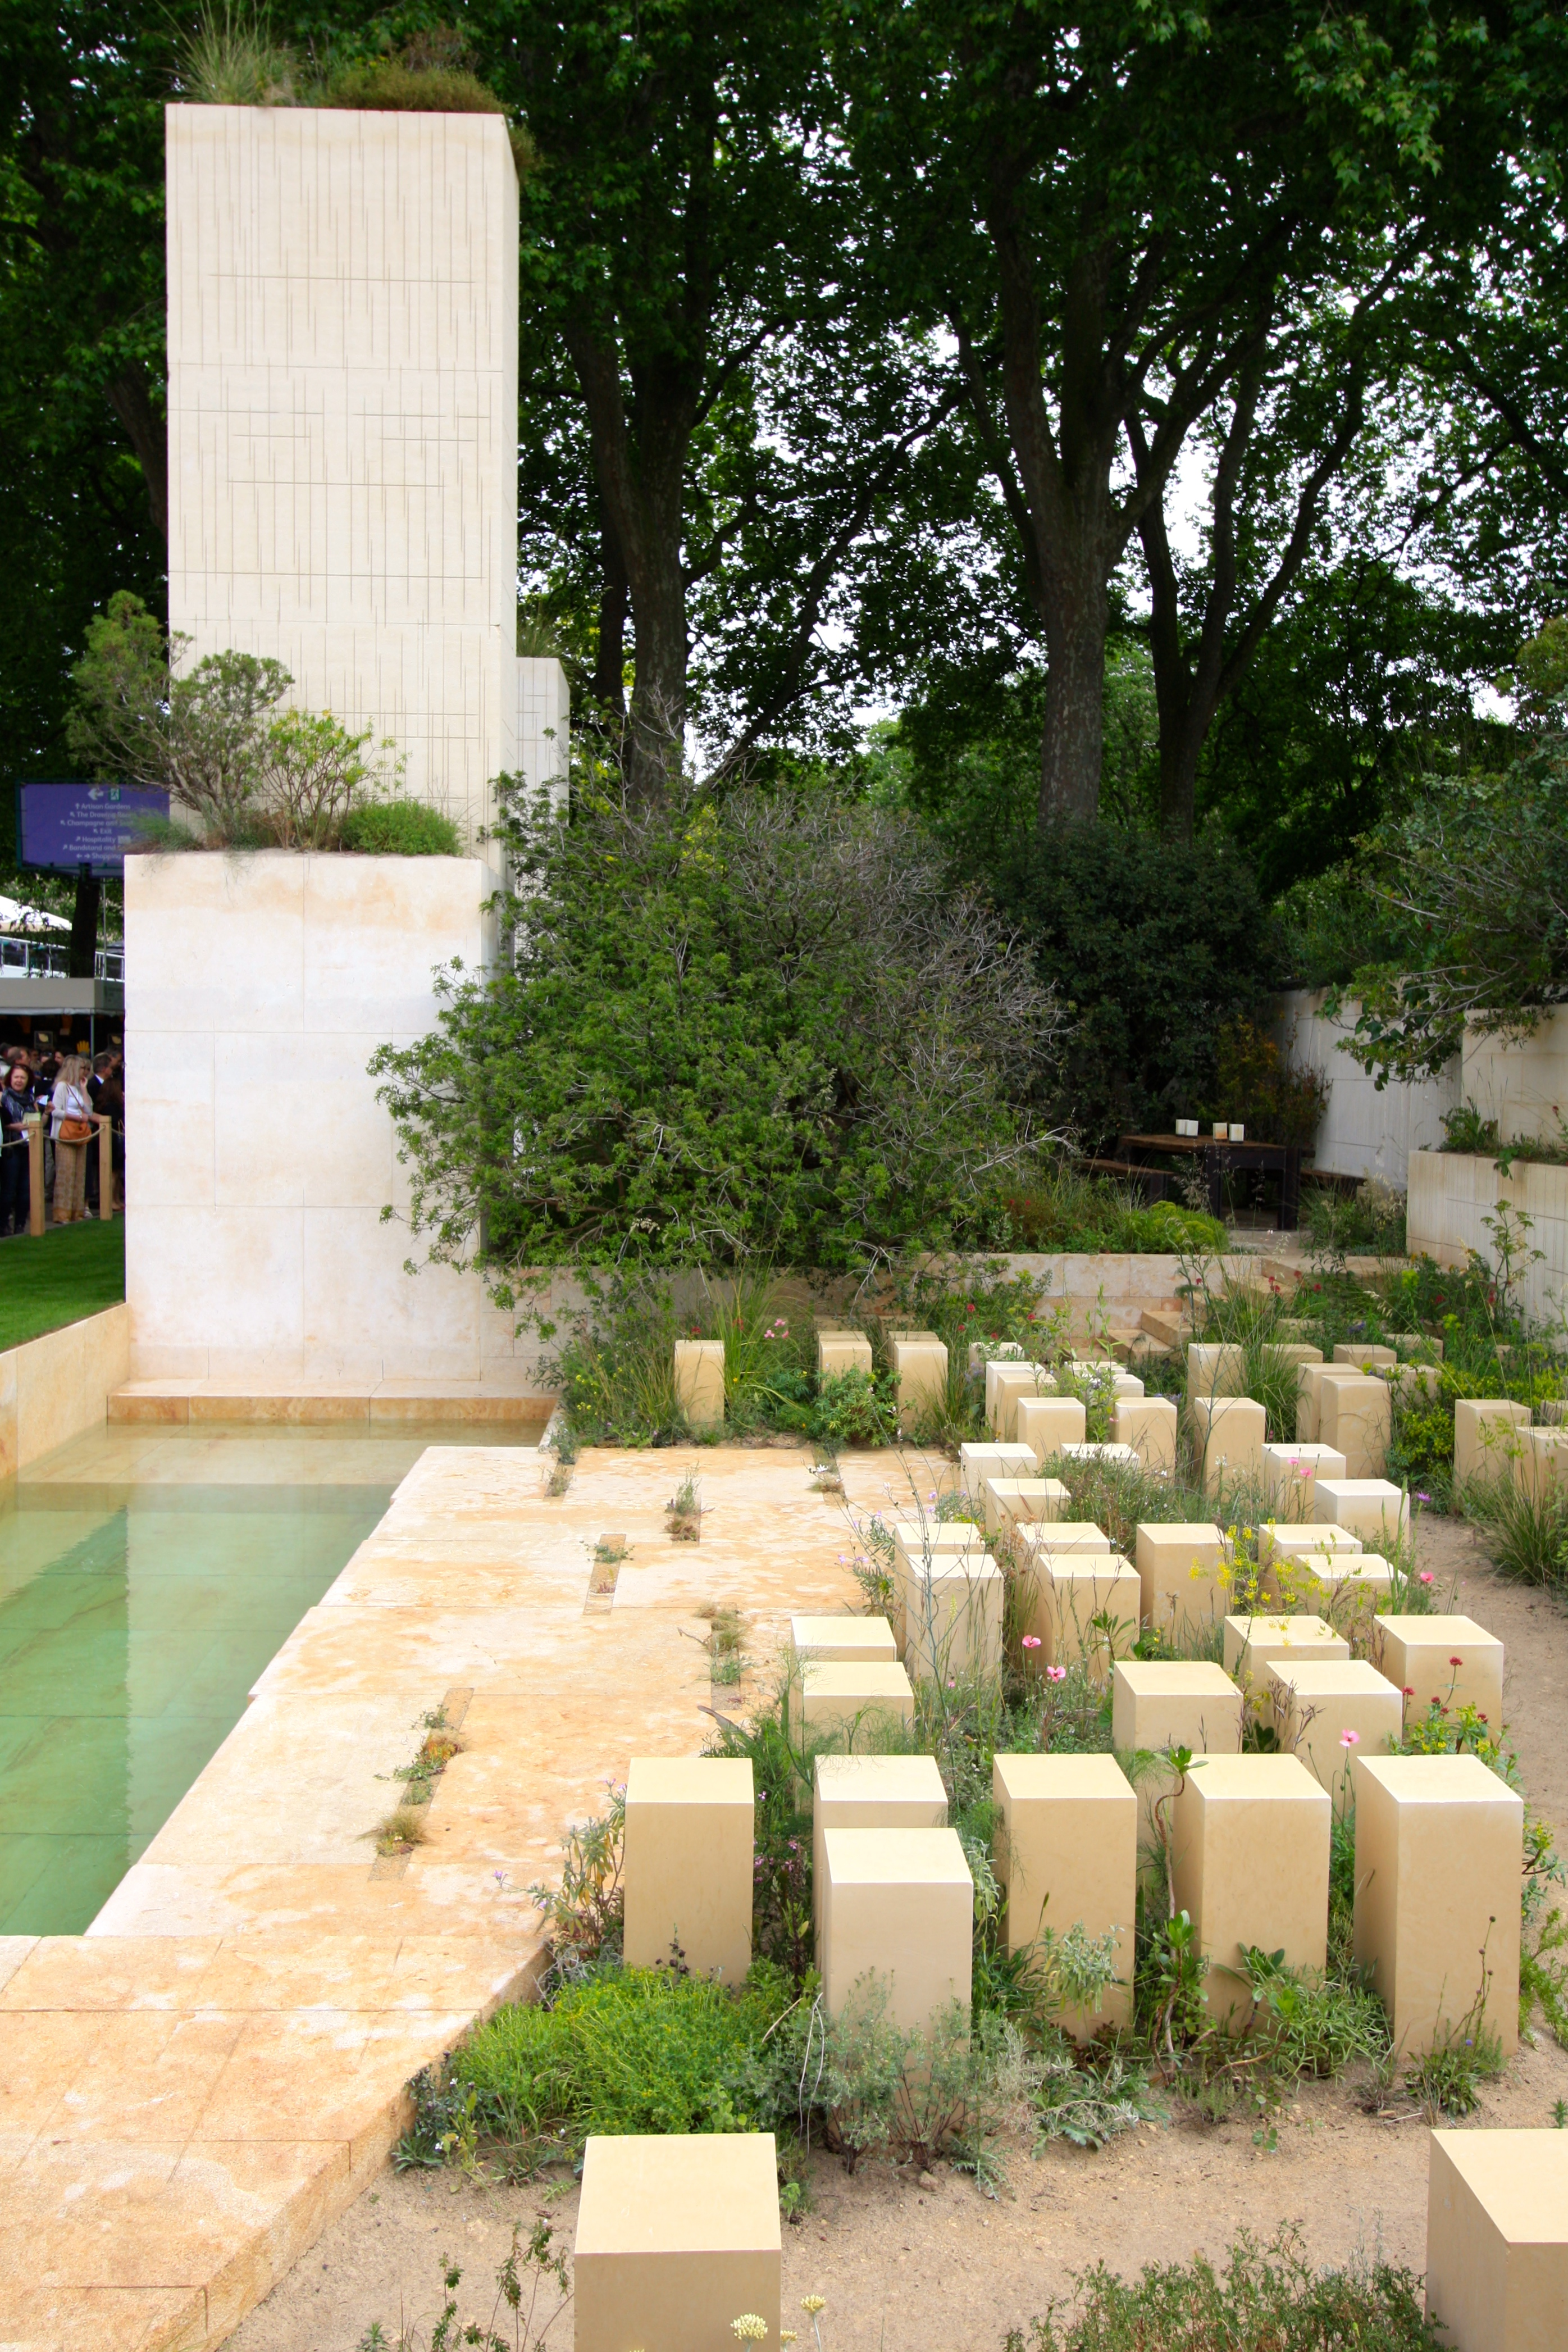 Gorgeous Chelsea Flower Show  Best In Show  The Mg Garden  The  With Inspiring Taking Inspiration From The Unique Mediterranean Landscape Of Malta The  Design For The Mg Garden Evokes An Abandoned Quarry Which Nature Has Begun  To  With Archaic Garden Centres In Plymouth Also Maria Gardens In Addition Garden Centre Dartford And Garden Services Manchester As Well As Garden Landscape Supplies Additionally Olive Garden Sevierville From Frustratedgardenercom With   Inspiring Chelsea Flower Show  Best In Show  The Mg Garden  The  With Archaic Taking Inspiration From The Unique Mediterranean Landscape Of Malta The  Design For The Mg Garden Evokes An Abandoned Quarry Which Nature Has Begun  To  And Gorgeous Garden Centres In Plymouth Also Maria Gardens In Addition Garden Centre Dartford From Frustratedgardenercom